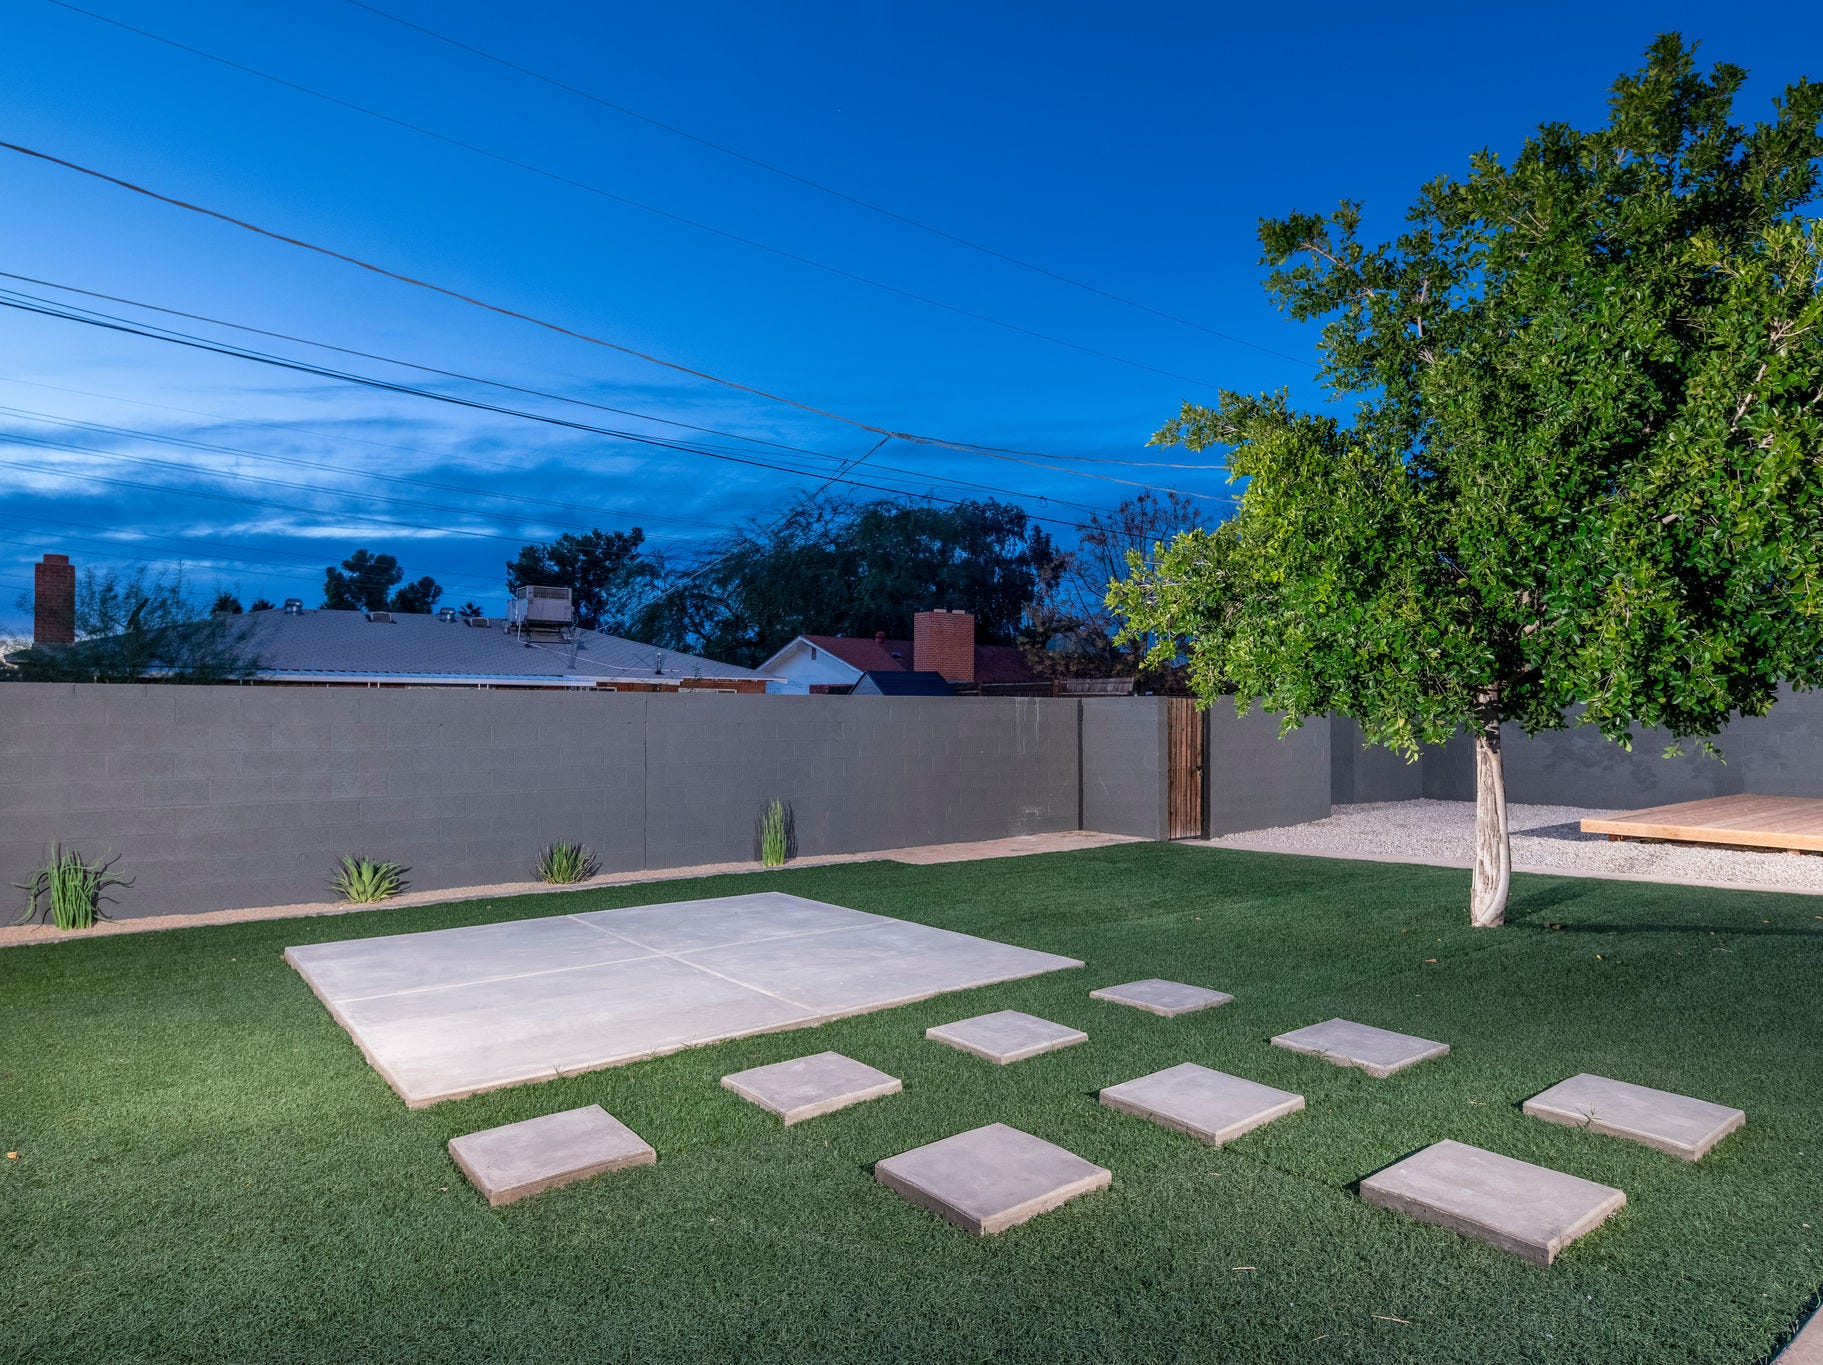 Pavers and artificial turf make for a low-maintenance backyard in this 1958 property.